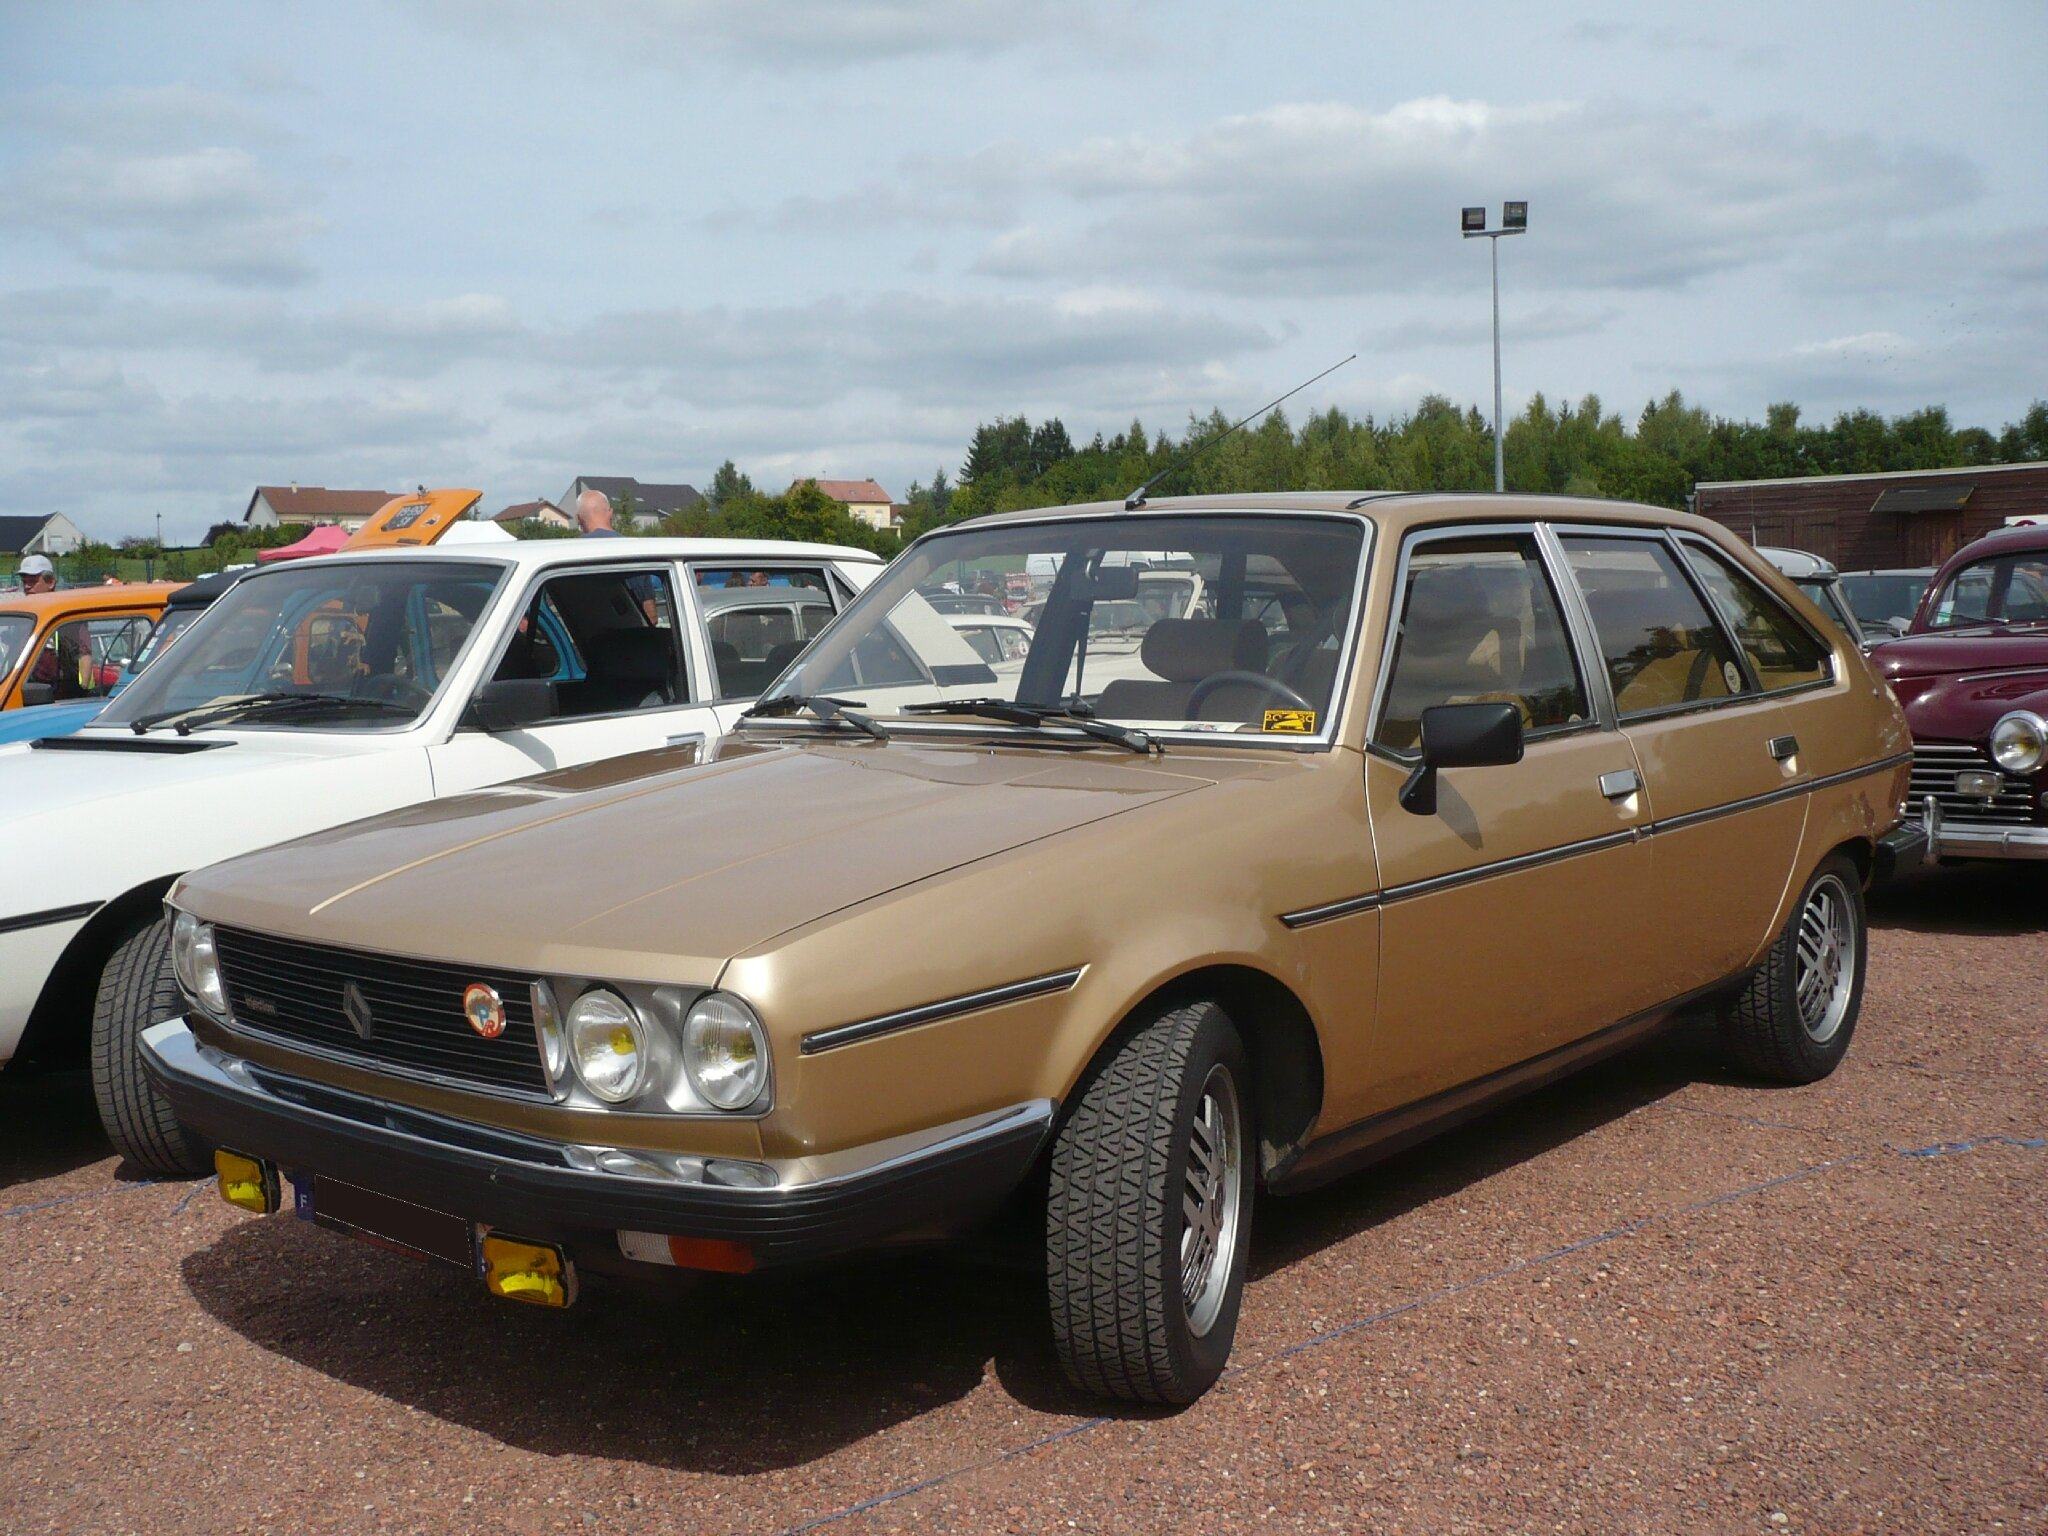 RENAULT 30 TX Automatic V6 Injection 1983 Hambach (1)